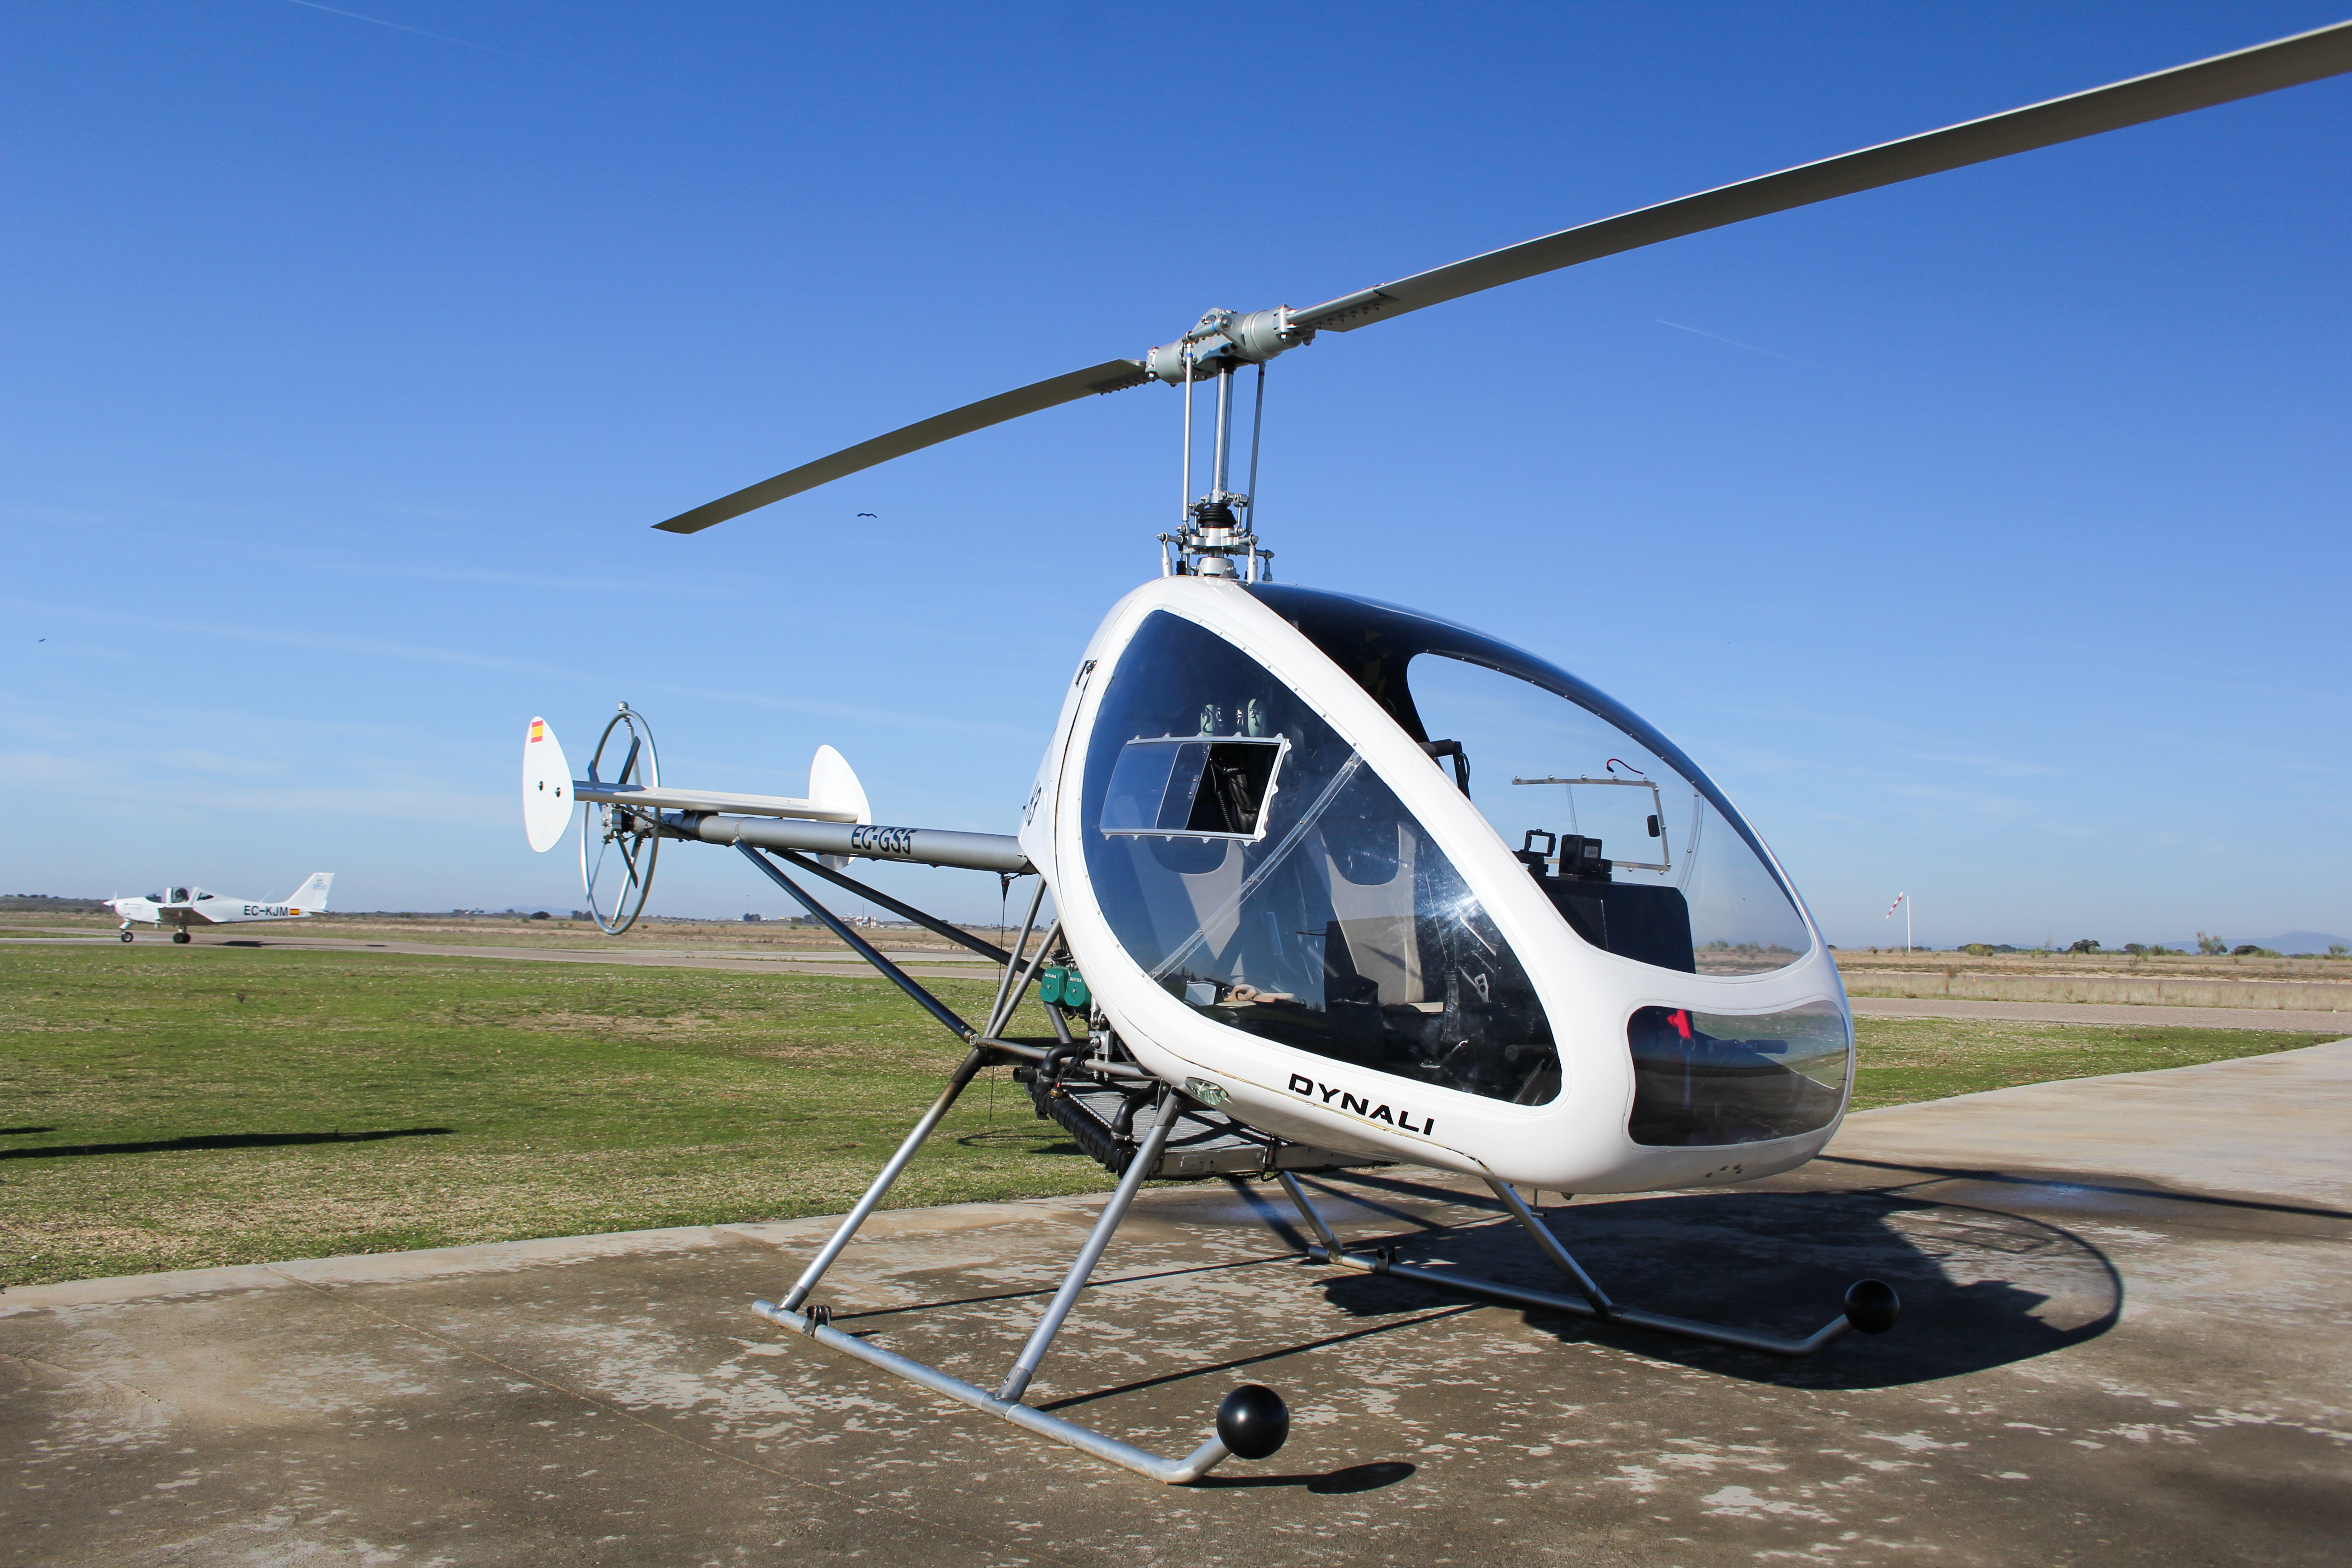 mosquito ultralight helicopter with File Helic C3 B3ptero Ultraligero on Aerocopter ak1 3 experimental kit helicopter besides Chinese Home Built Helicopter moreover Fb78786f329bd5685fb692643111e928 furthermore 2 Person Ultralight Aircraft 6rgAaEEpDXSM7usNy90X8CV4PG57aK35Rj9HnUxQT28 further File Helic C3 B3ptero Ultraligero.